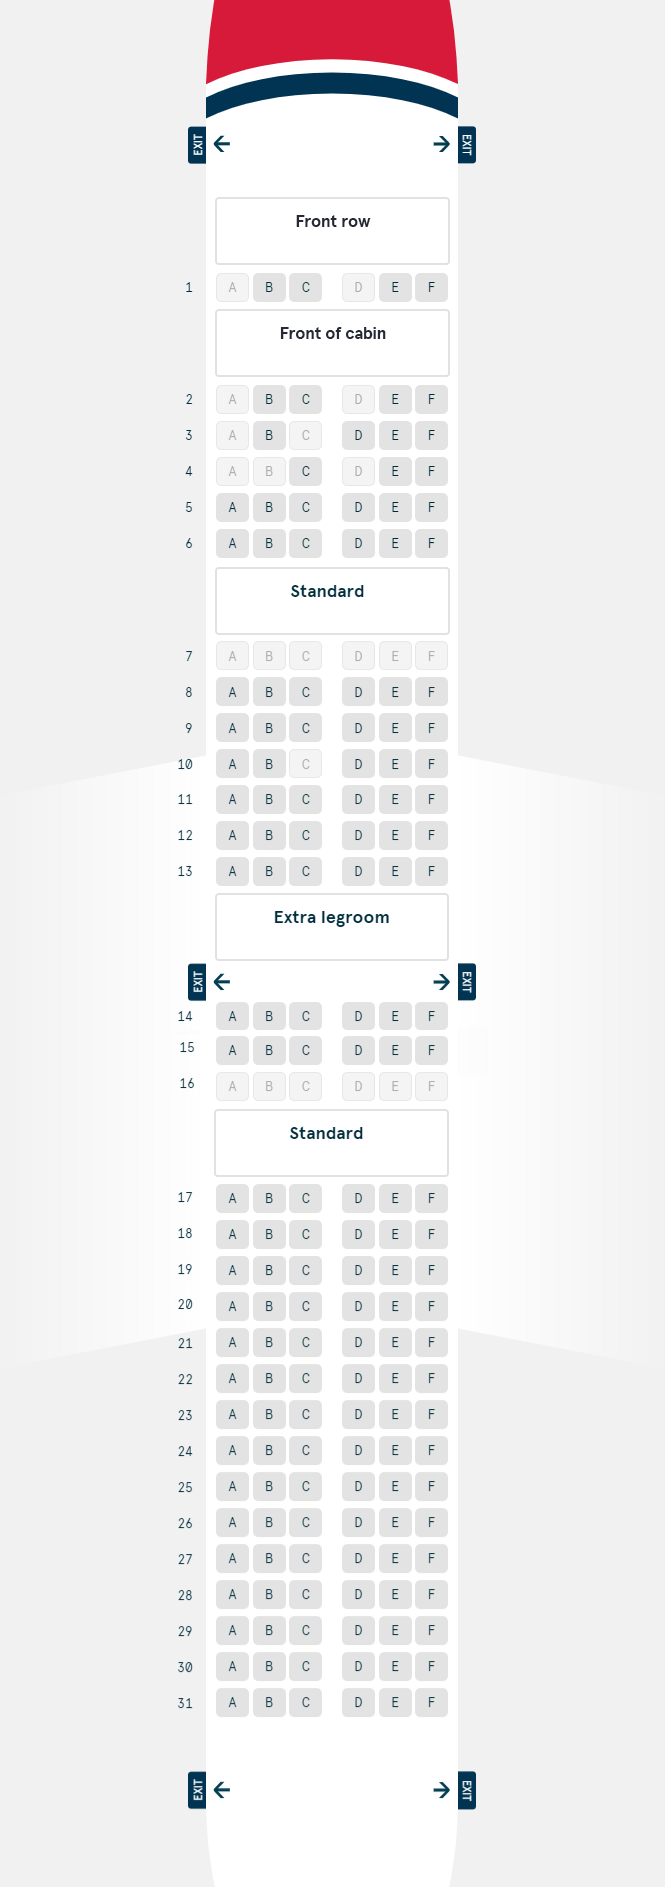 Boeing 737 800 Seating Plan Singapore Airlines